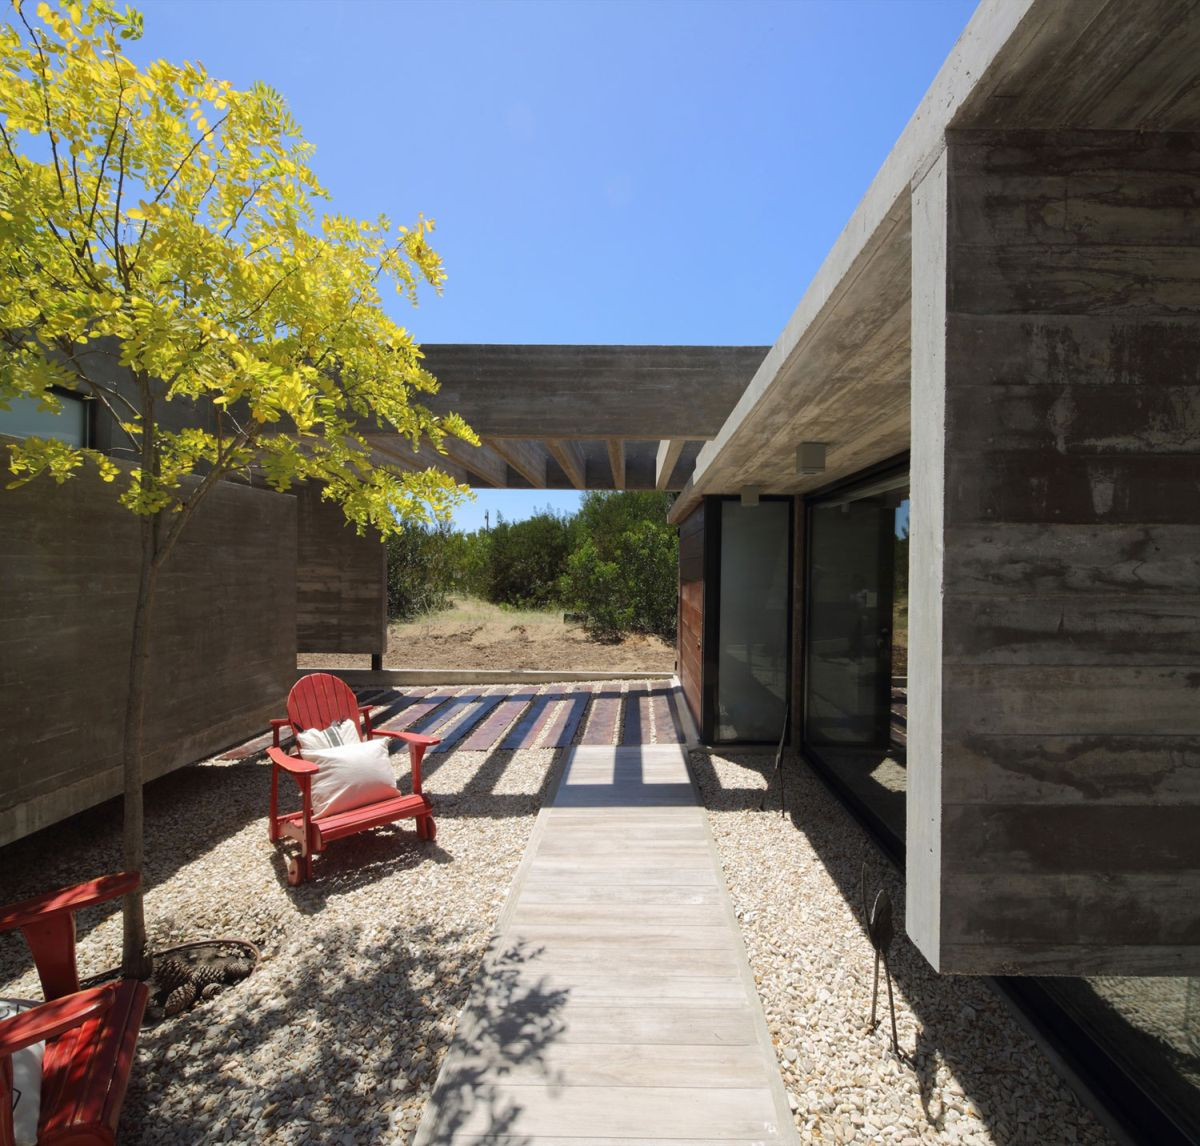 S & S House in Argentina inner courtyard